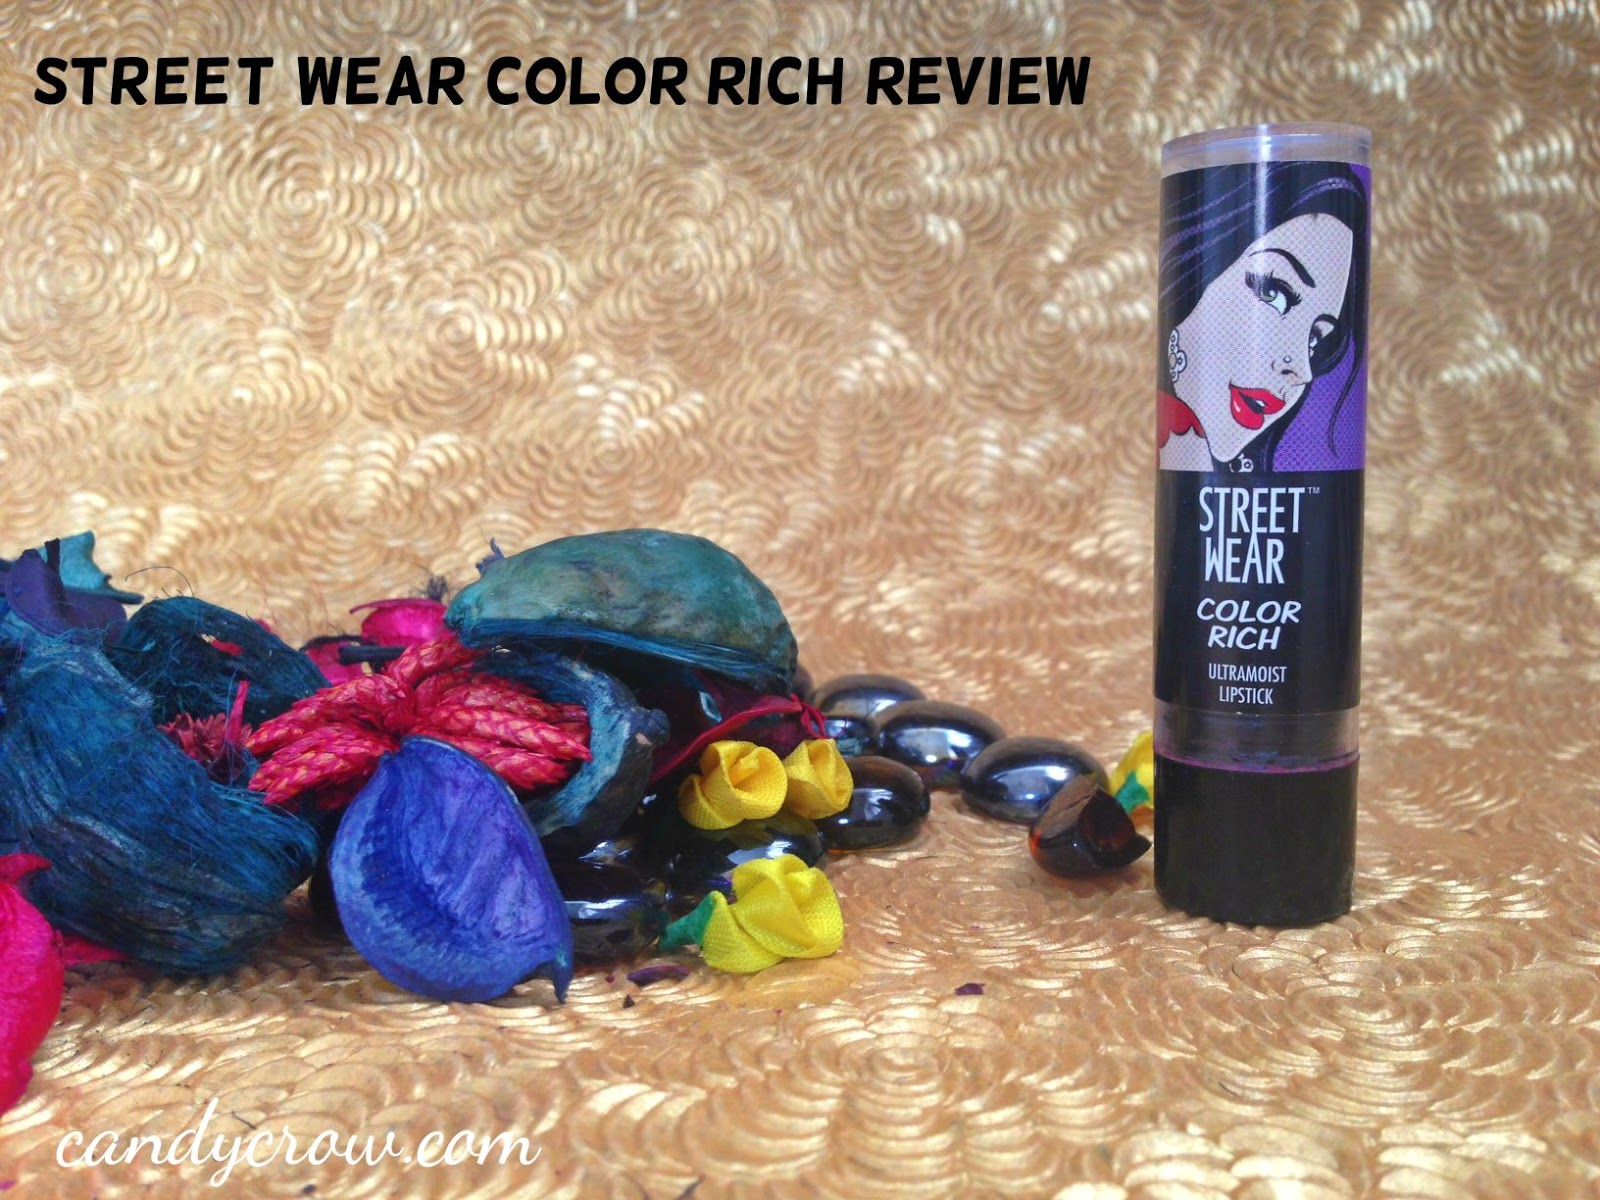 Street Wear Color Rich Lipstick - P.S I am sexy Review